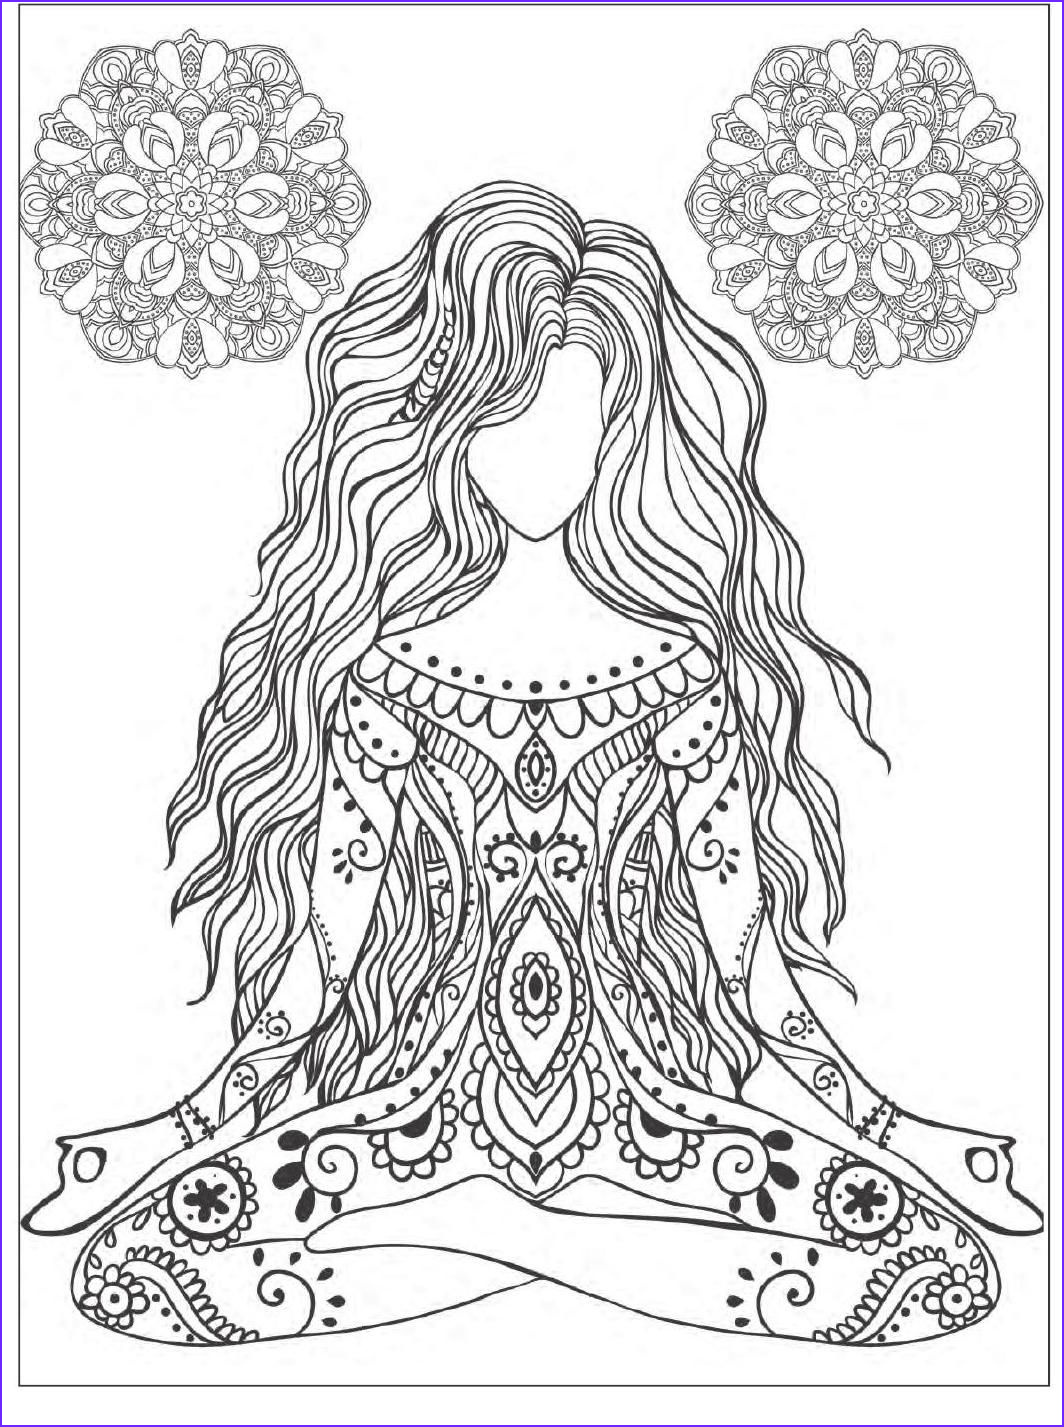 Mandala Adult Coloring Books Beautiful Photos Yoga and Meditation Coloring Book for Adults with Yoga